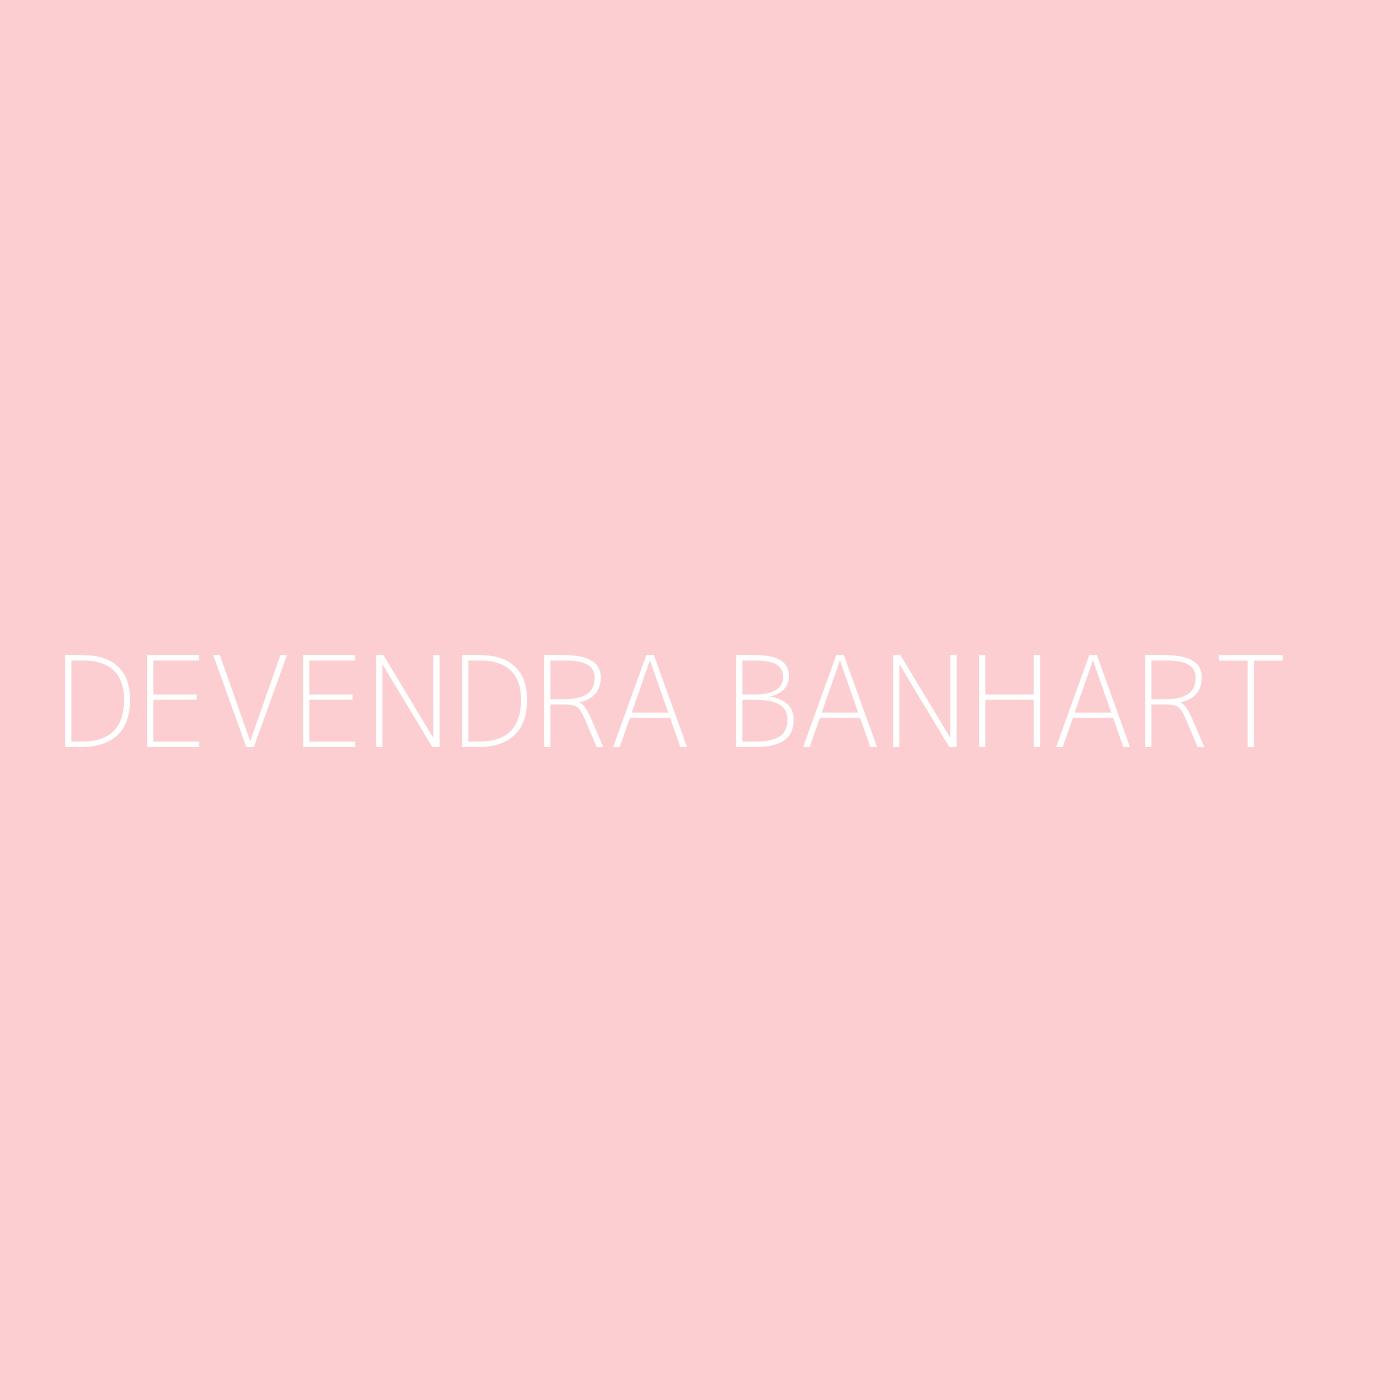 Devendra Banhart Playlist Artwork